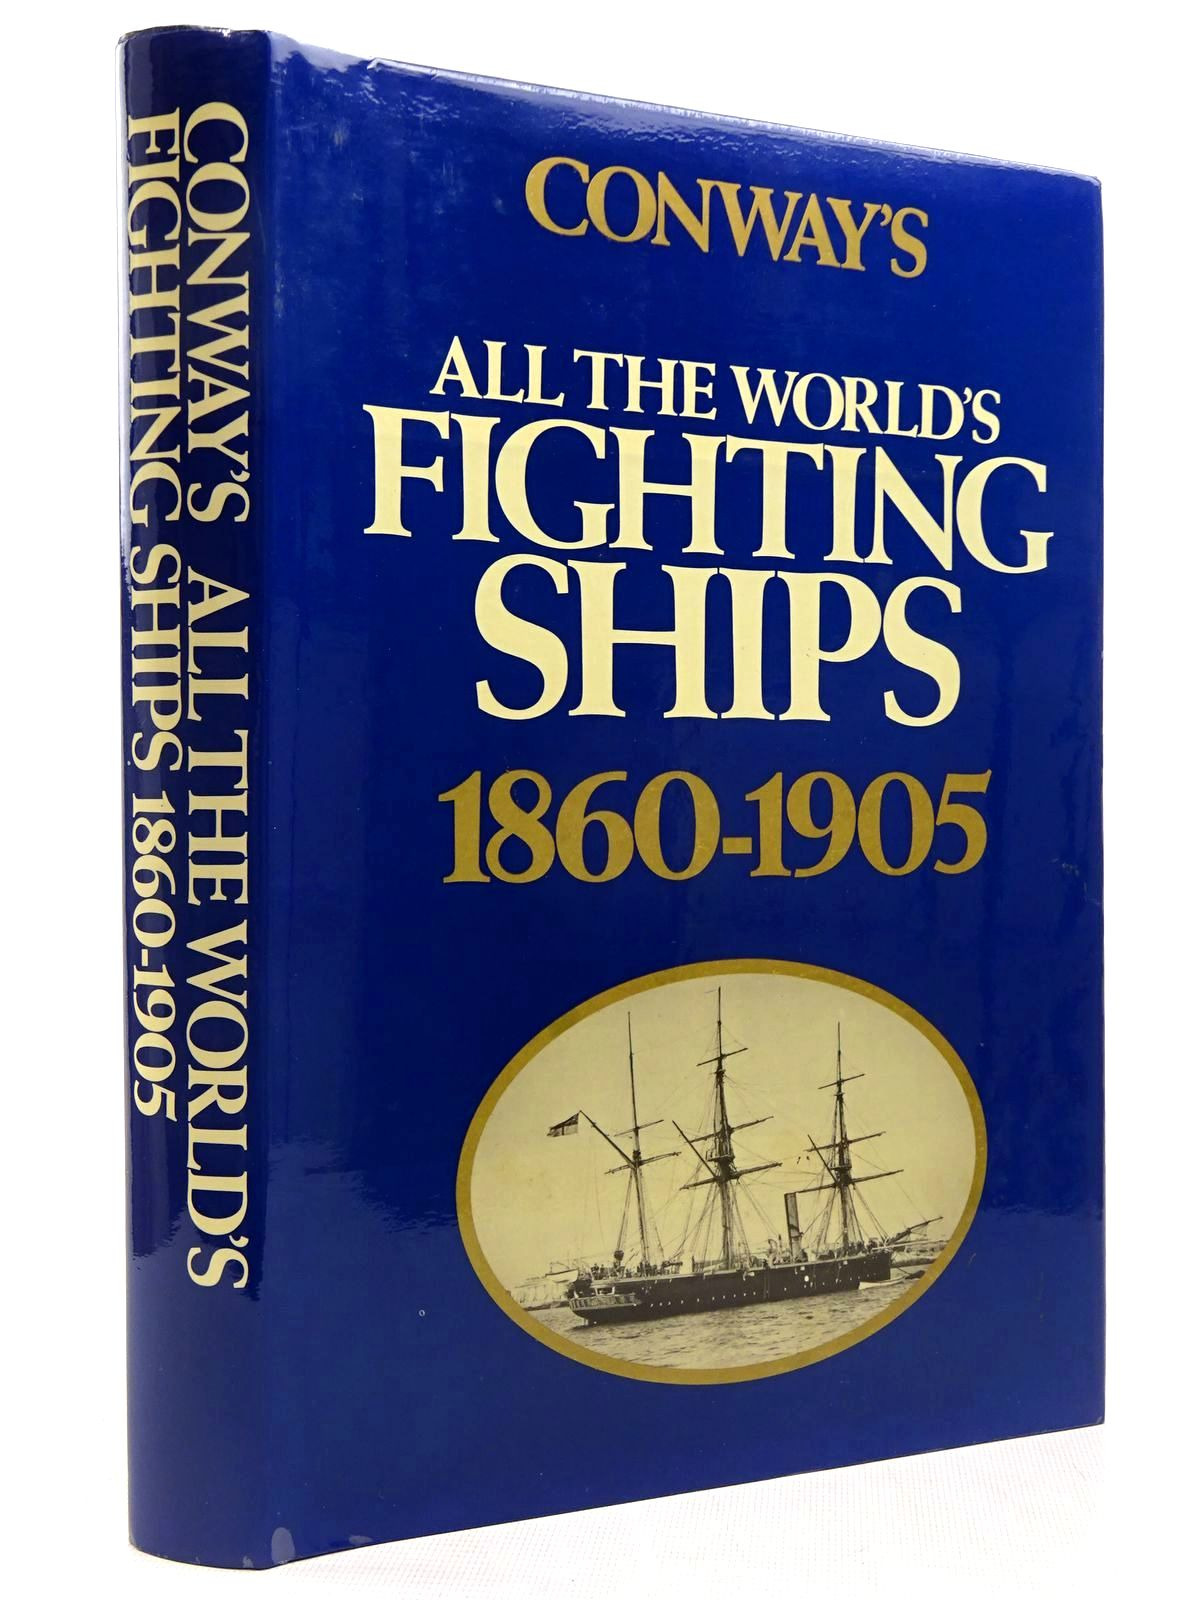 Photo of CONWAY'S ALL THE WORLD'S FIGHTING SHIPS 1860-1905- Stock Number: 2129264